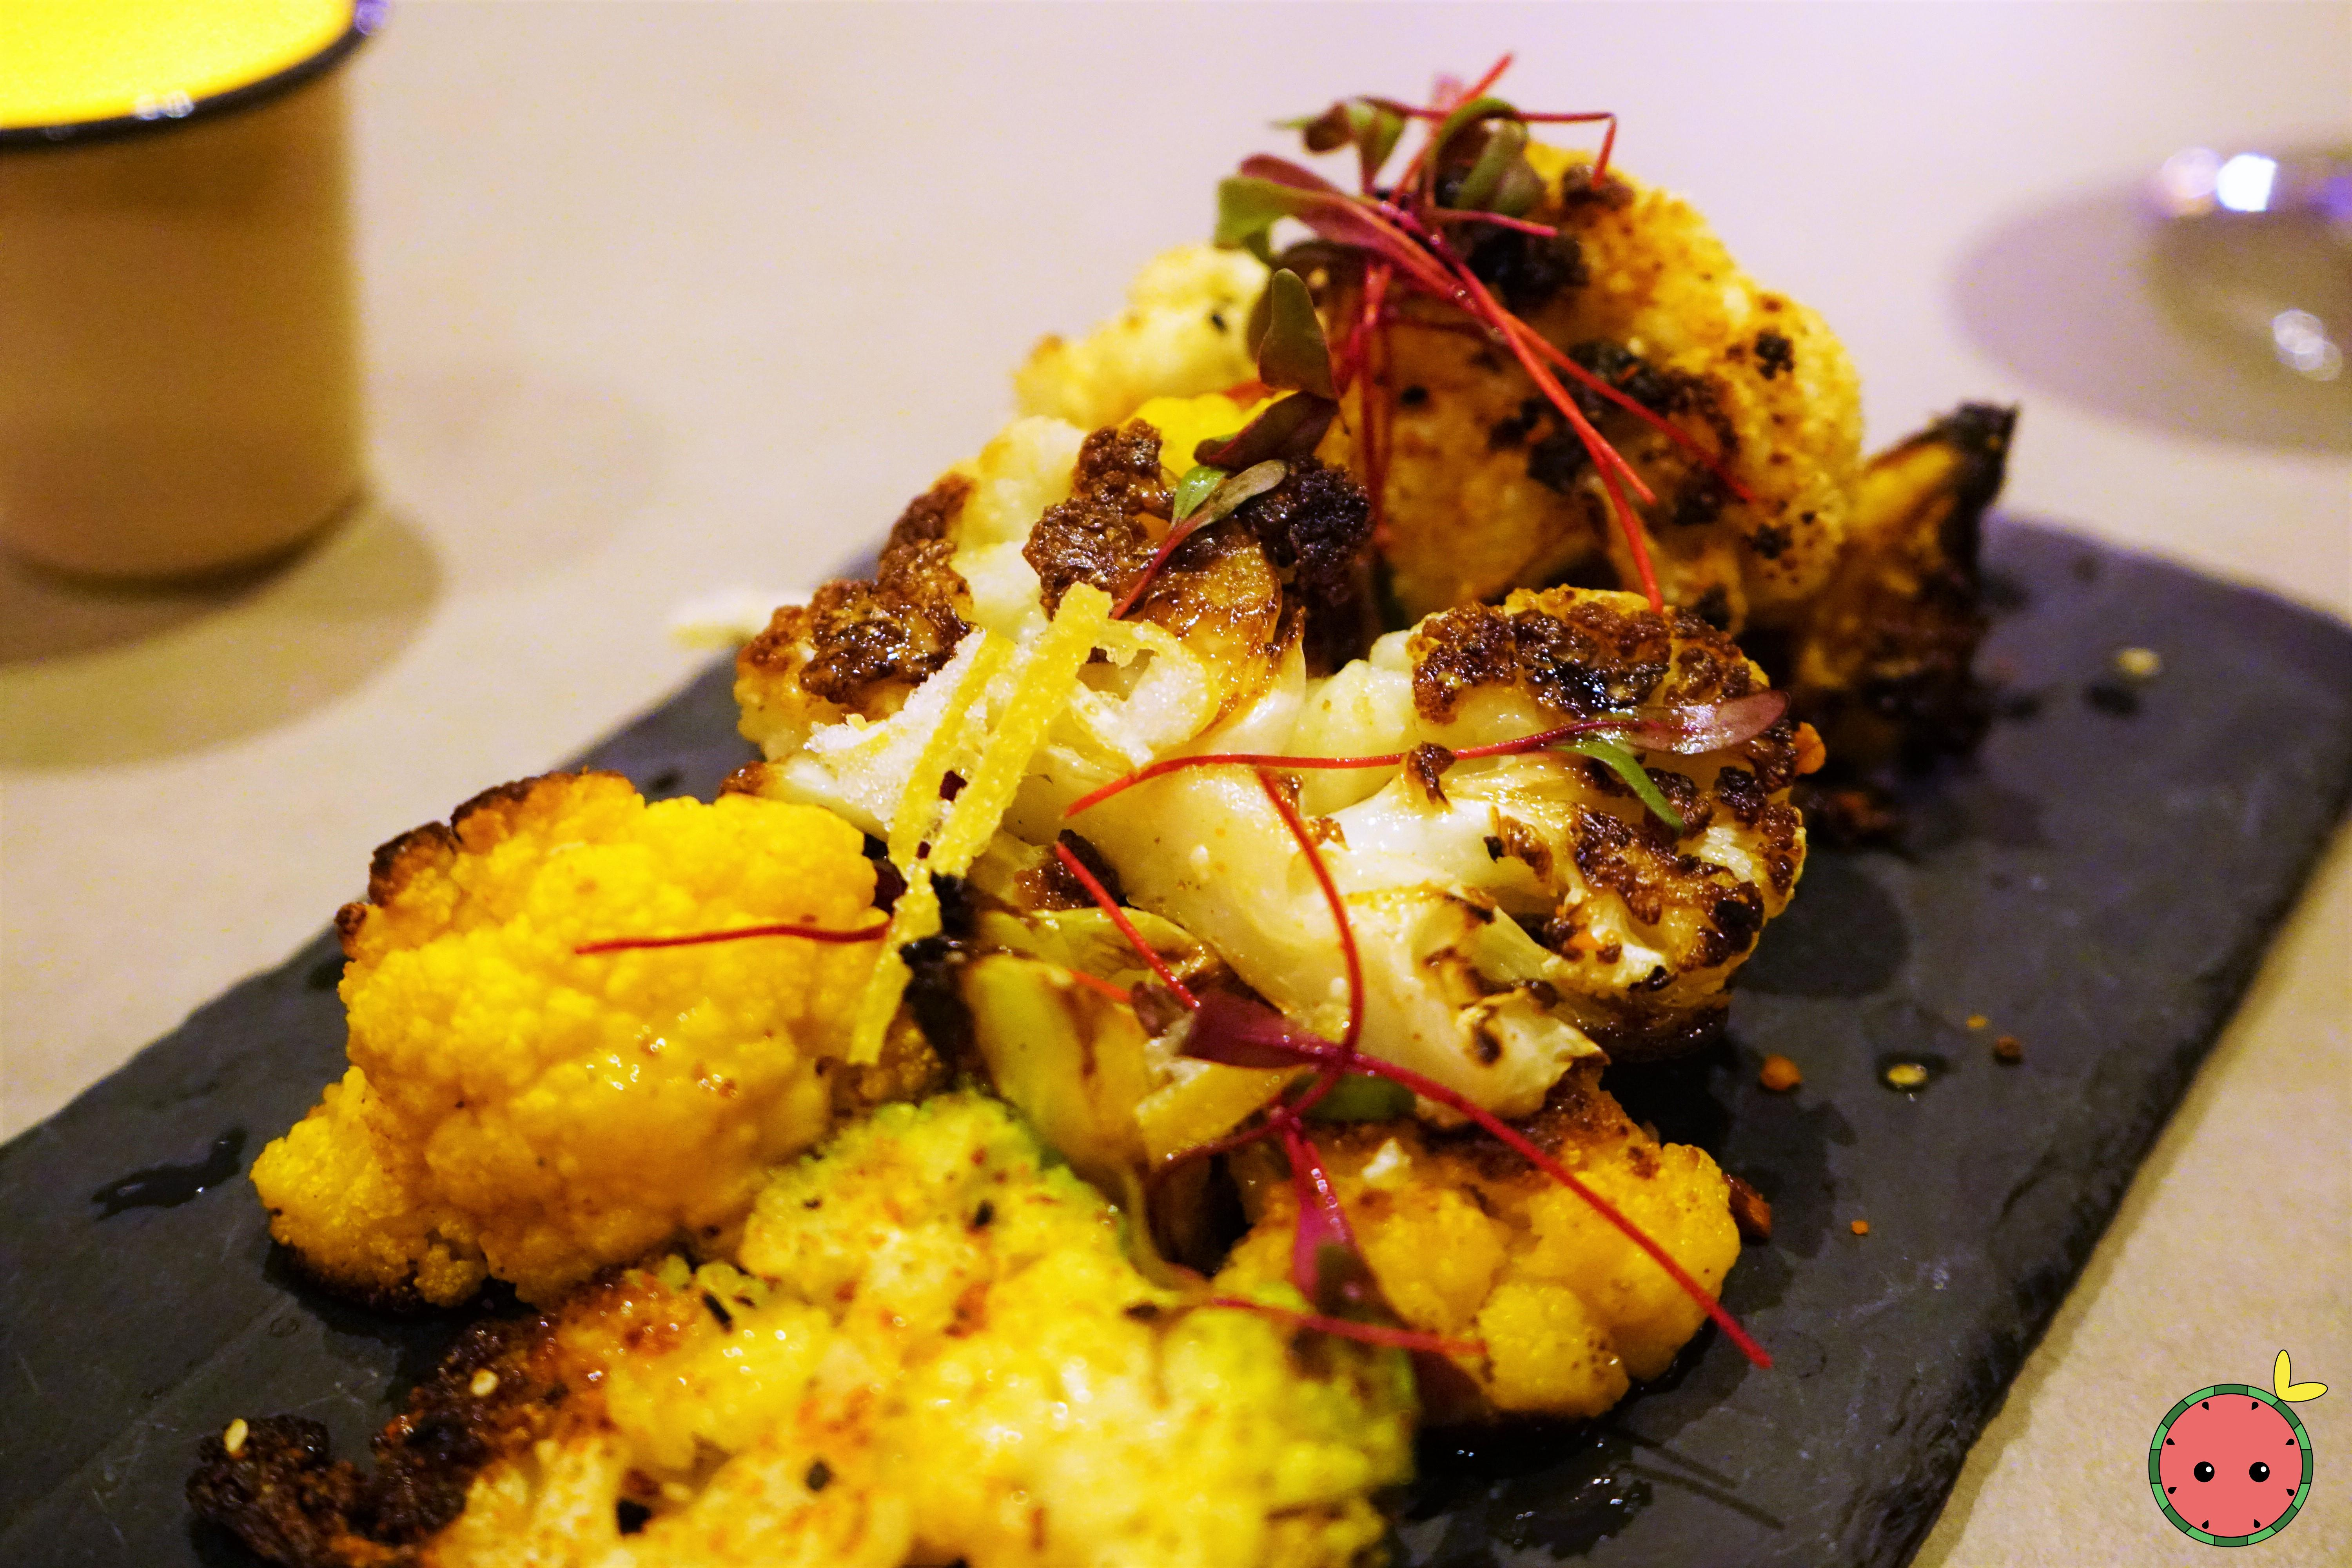 Spice-Roasted Cauliflower - Pecan and Sesame Seed Dukka, Brown Butter, Sorel, & Candied Lemon Zest (